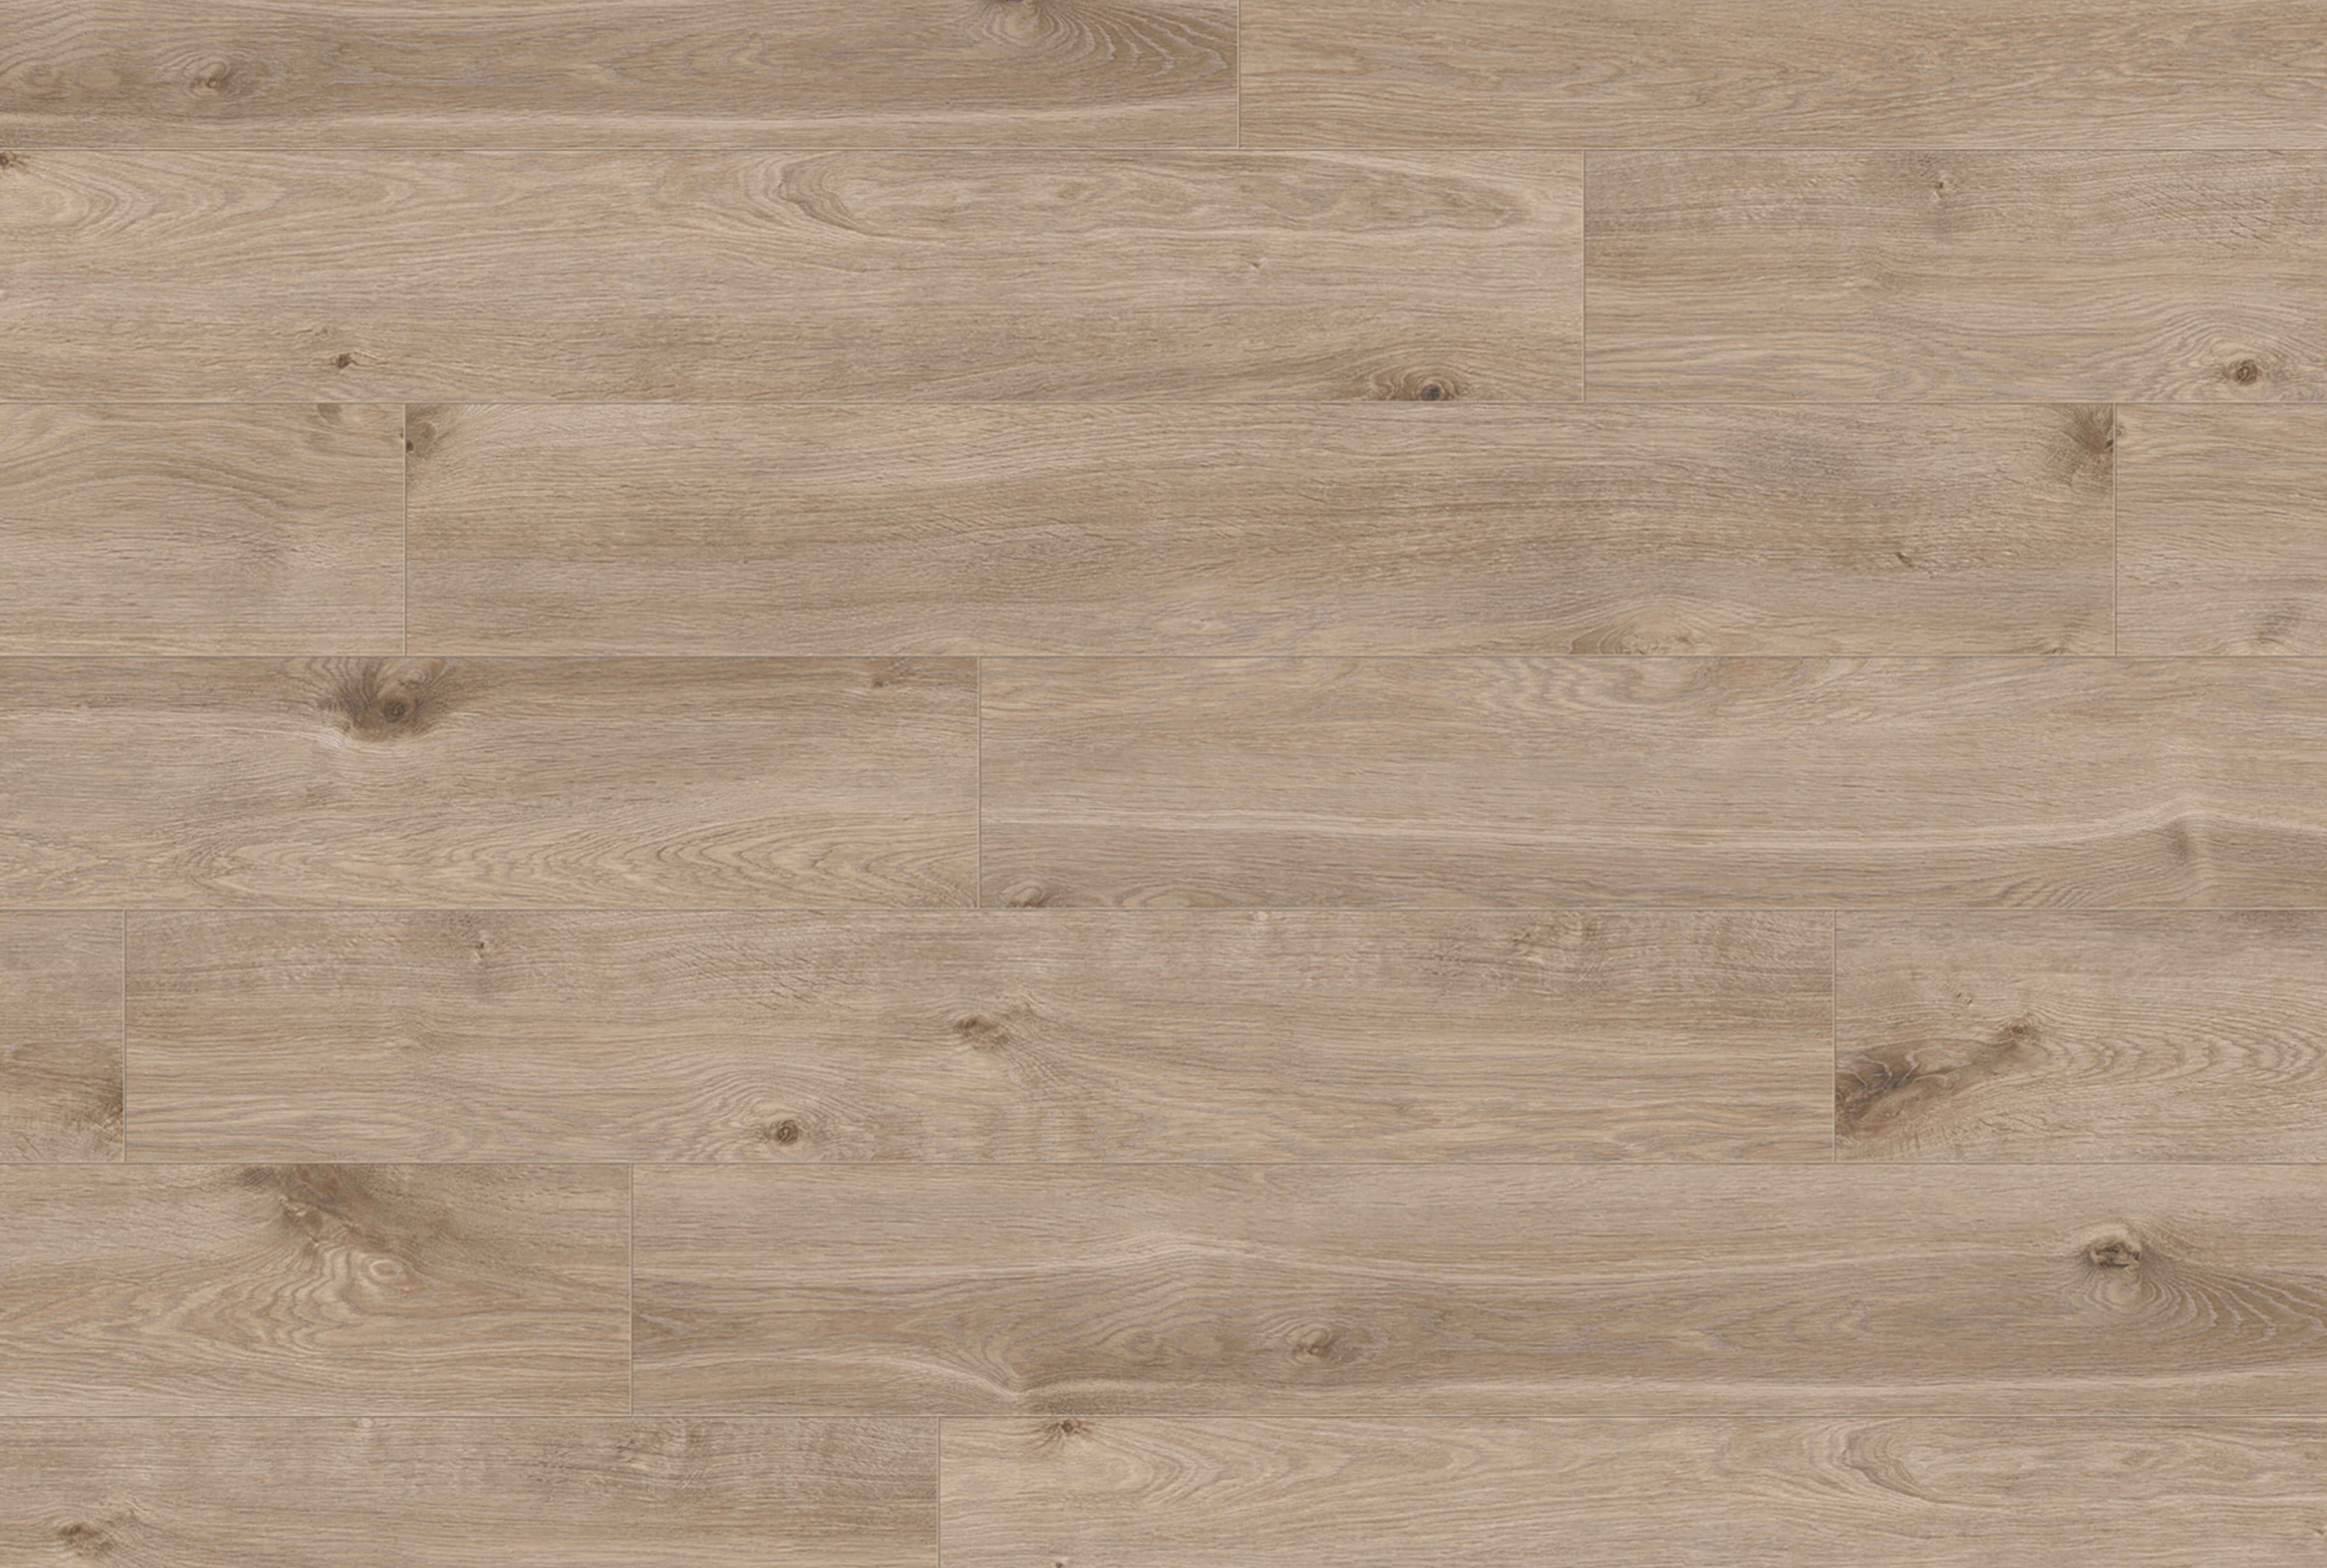 1536 · Michigan Oak<br>Format size: W 192 mm x L 1285 mm<br>Structure: Nature Line